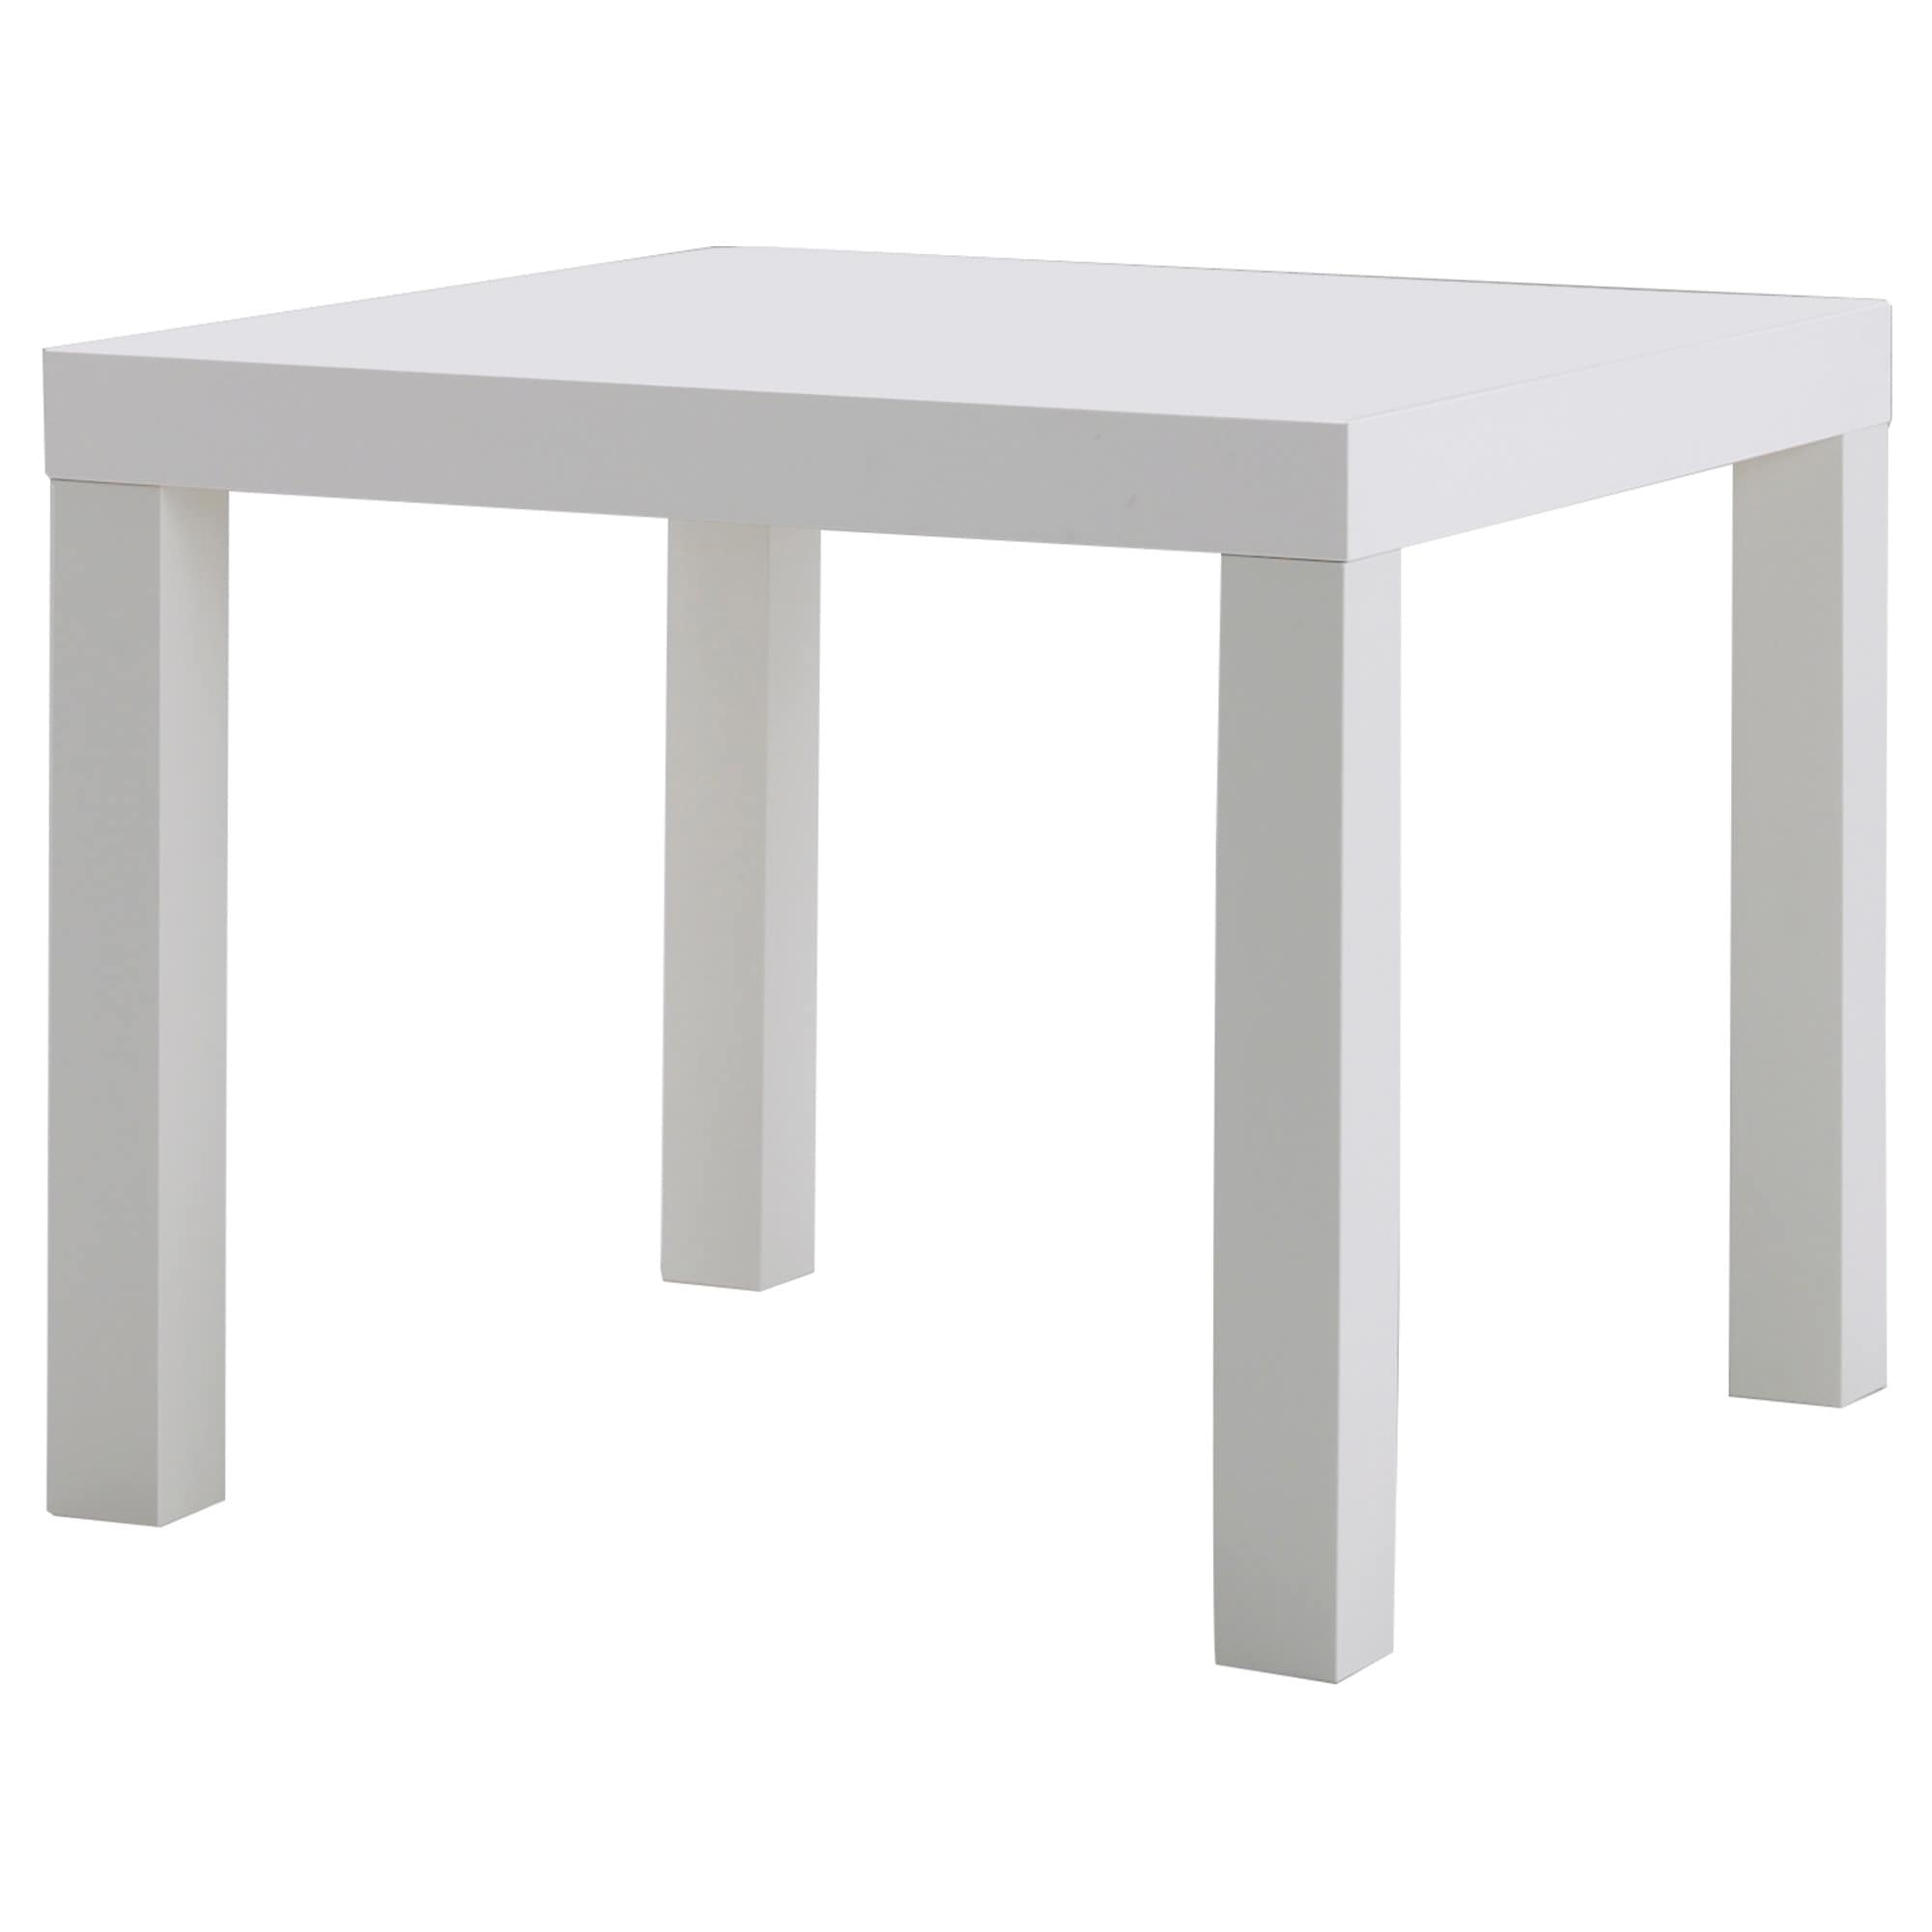 IKEA  LACK Side table white is part of Home Accents Ikea Hacks - IKEA Side table white Length 55 cm, Width 55 cm, Height 45 cm, Max  load 25 kg, 20011413